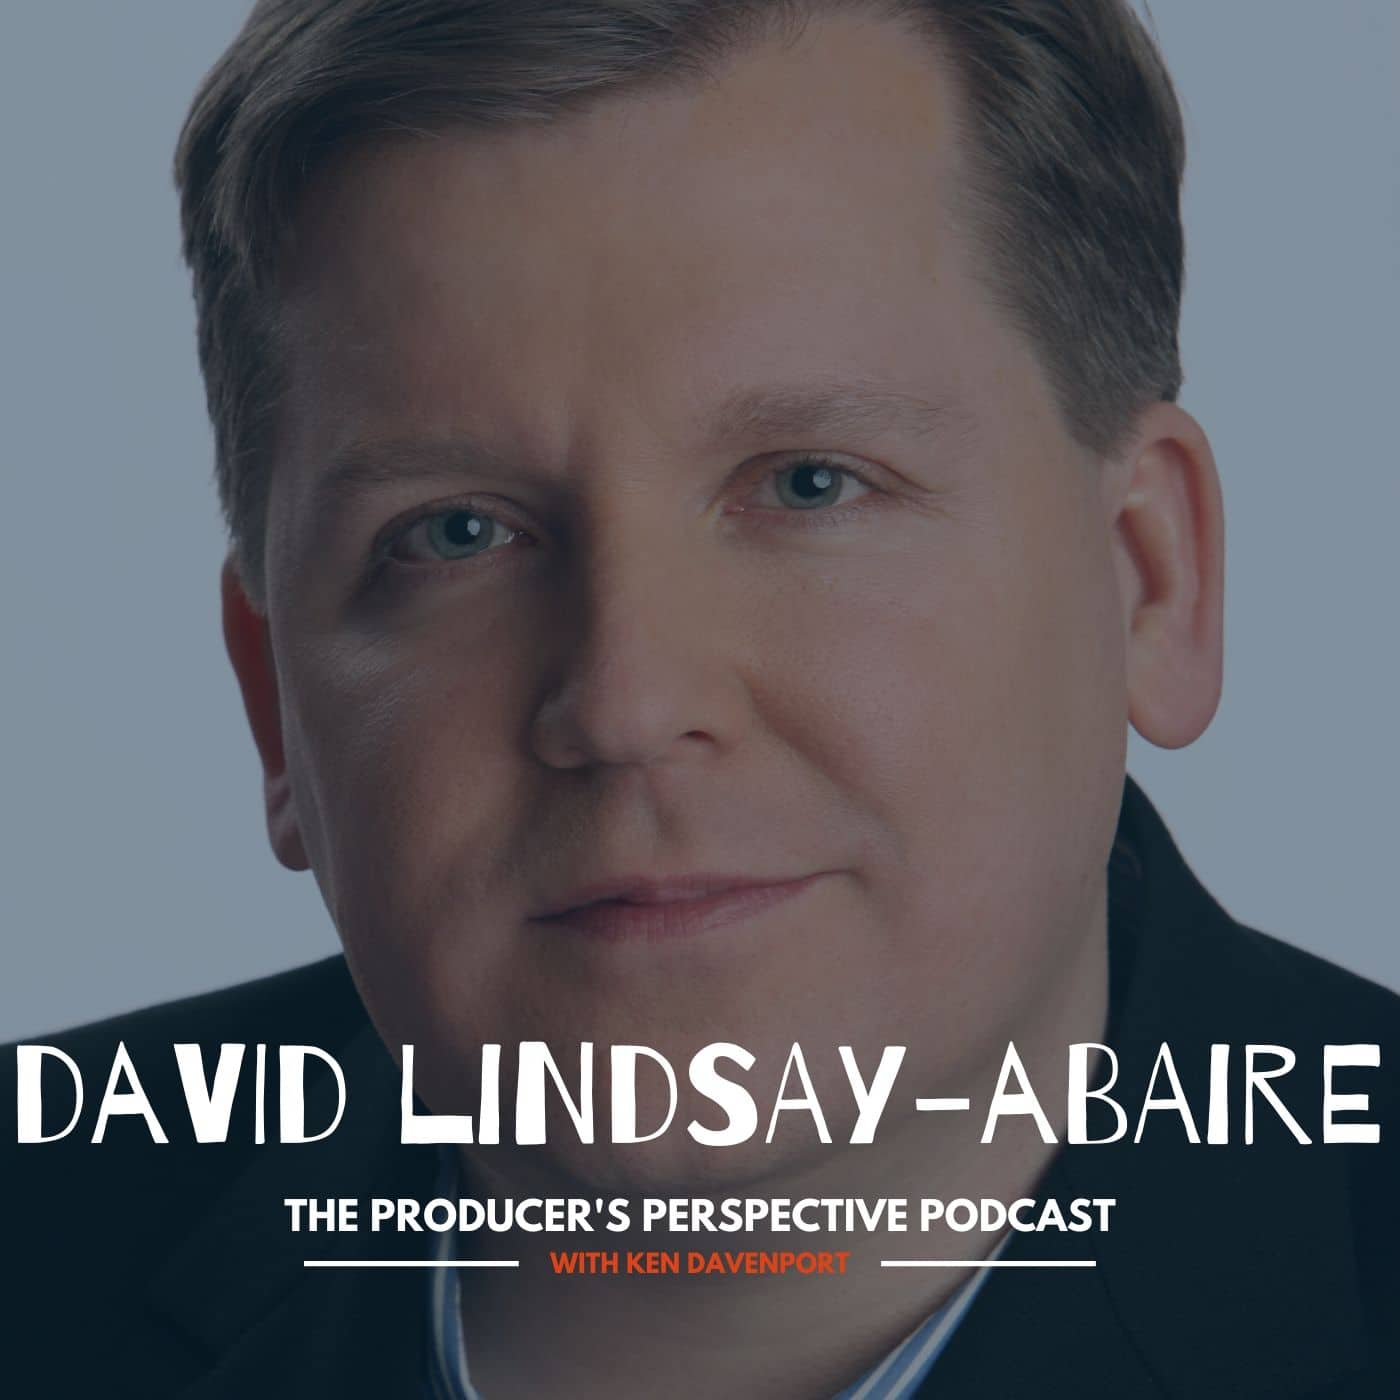 Ken Davenport's The Producer's Perspective Podcast Episode 156 - David Lindsay-Abaire